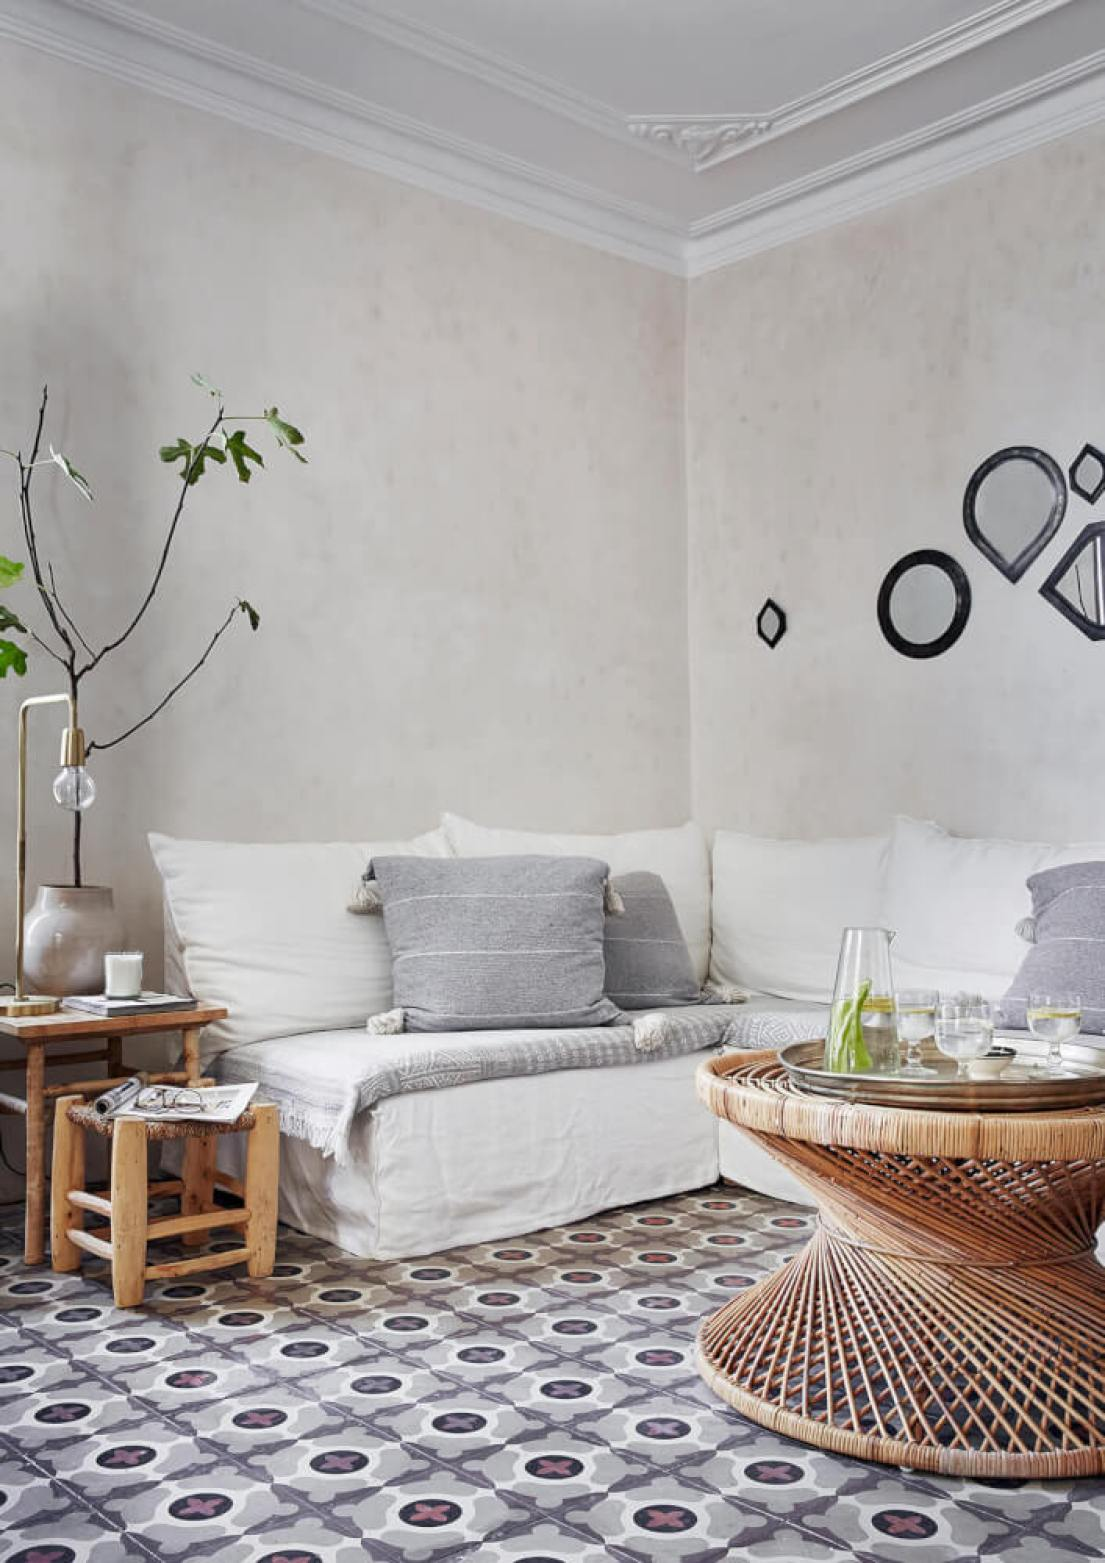 An inviting couch occupies one corner of the living and dining room the floor tiles are original fixtures while the interior walls have been plastered but